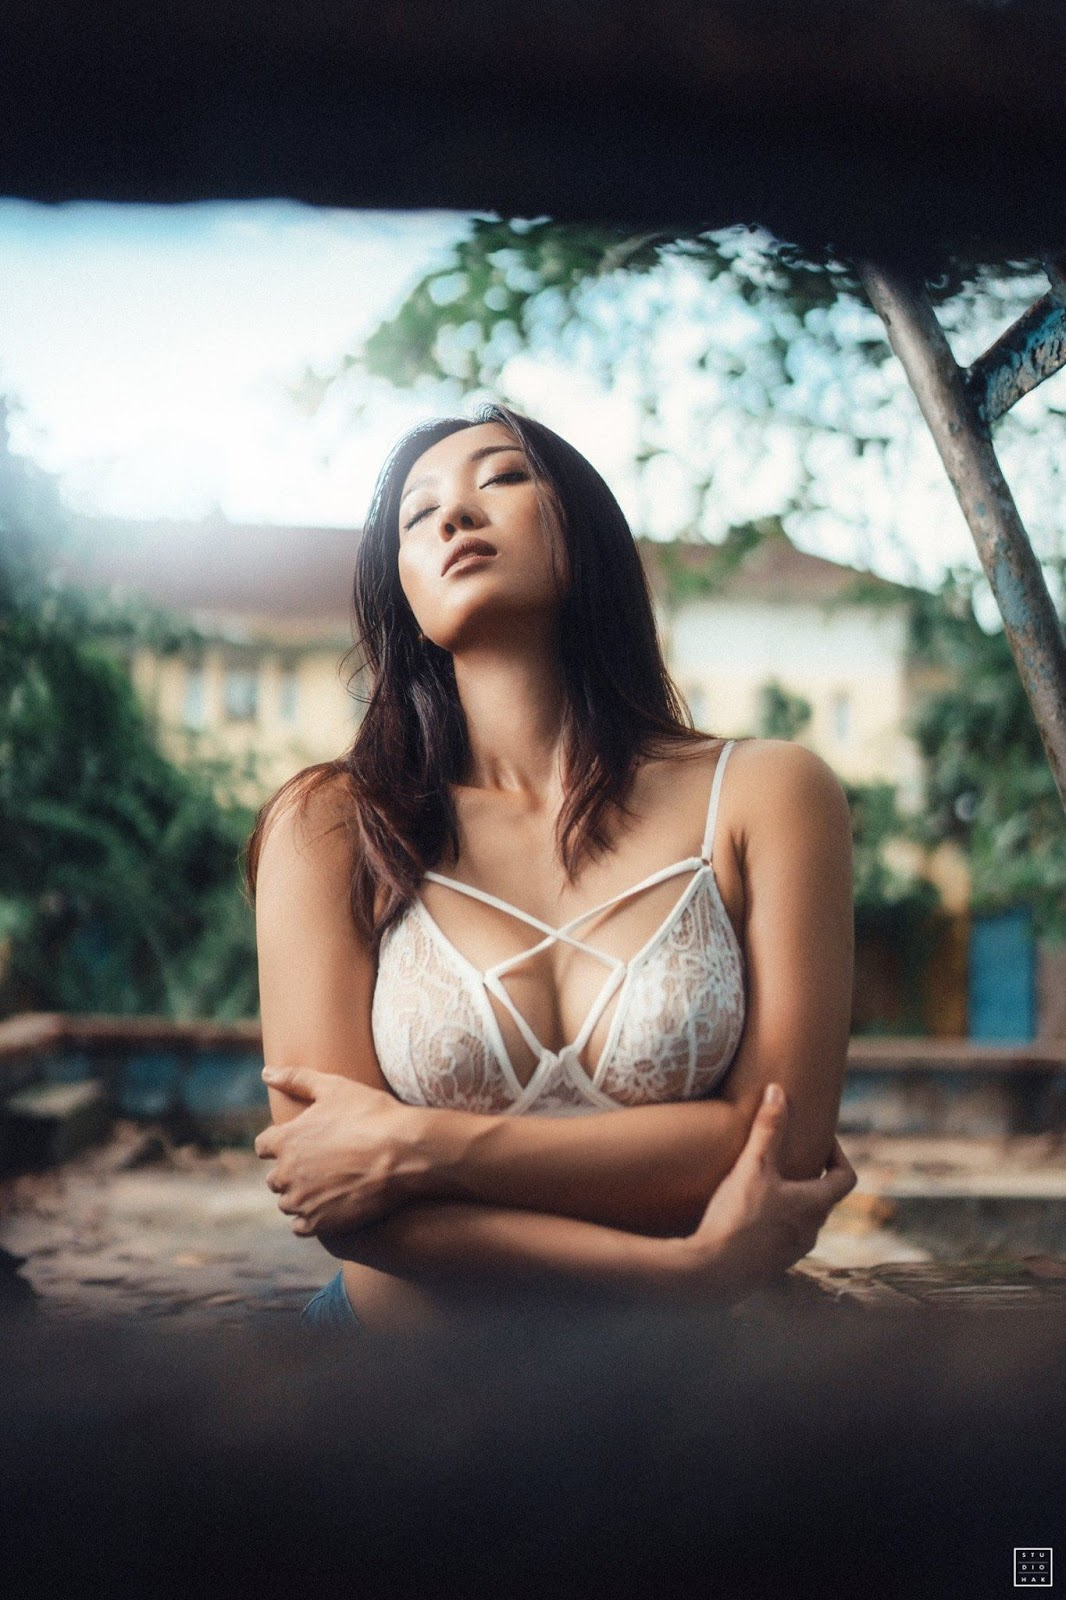 Lu Lu Aung Amazing Outdoor Photoshoot by HAK